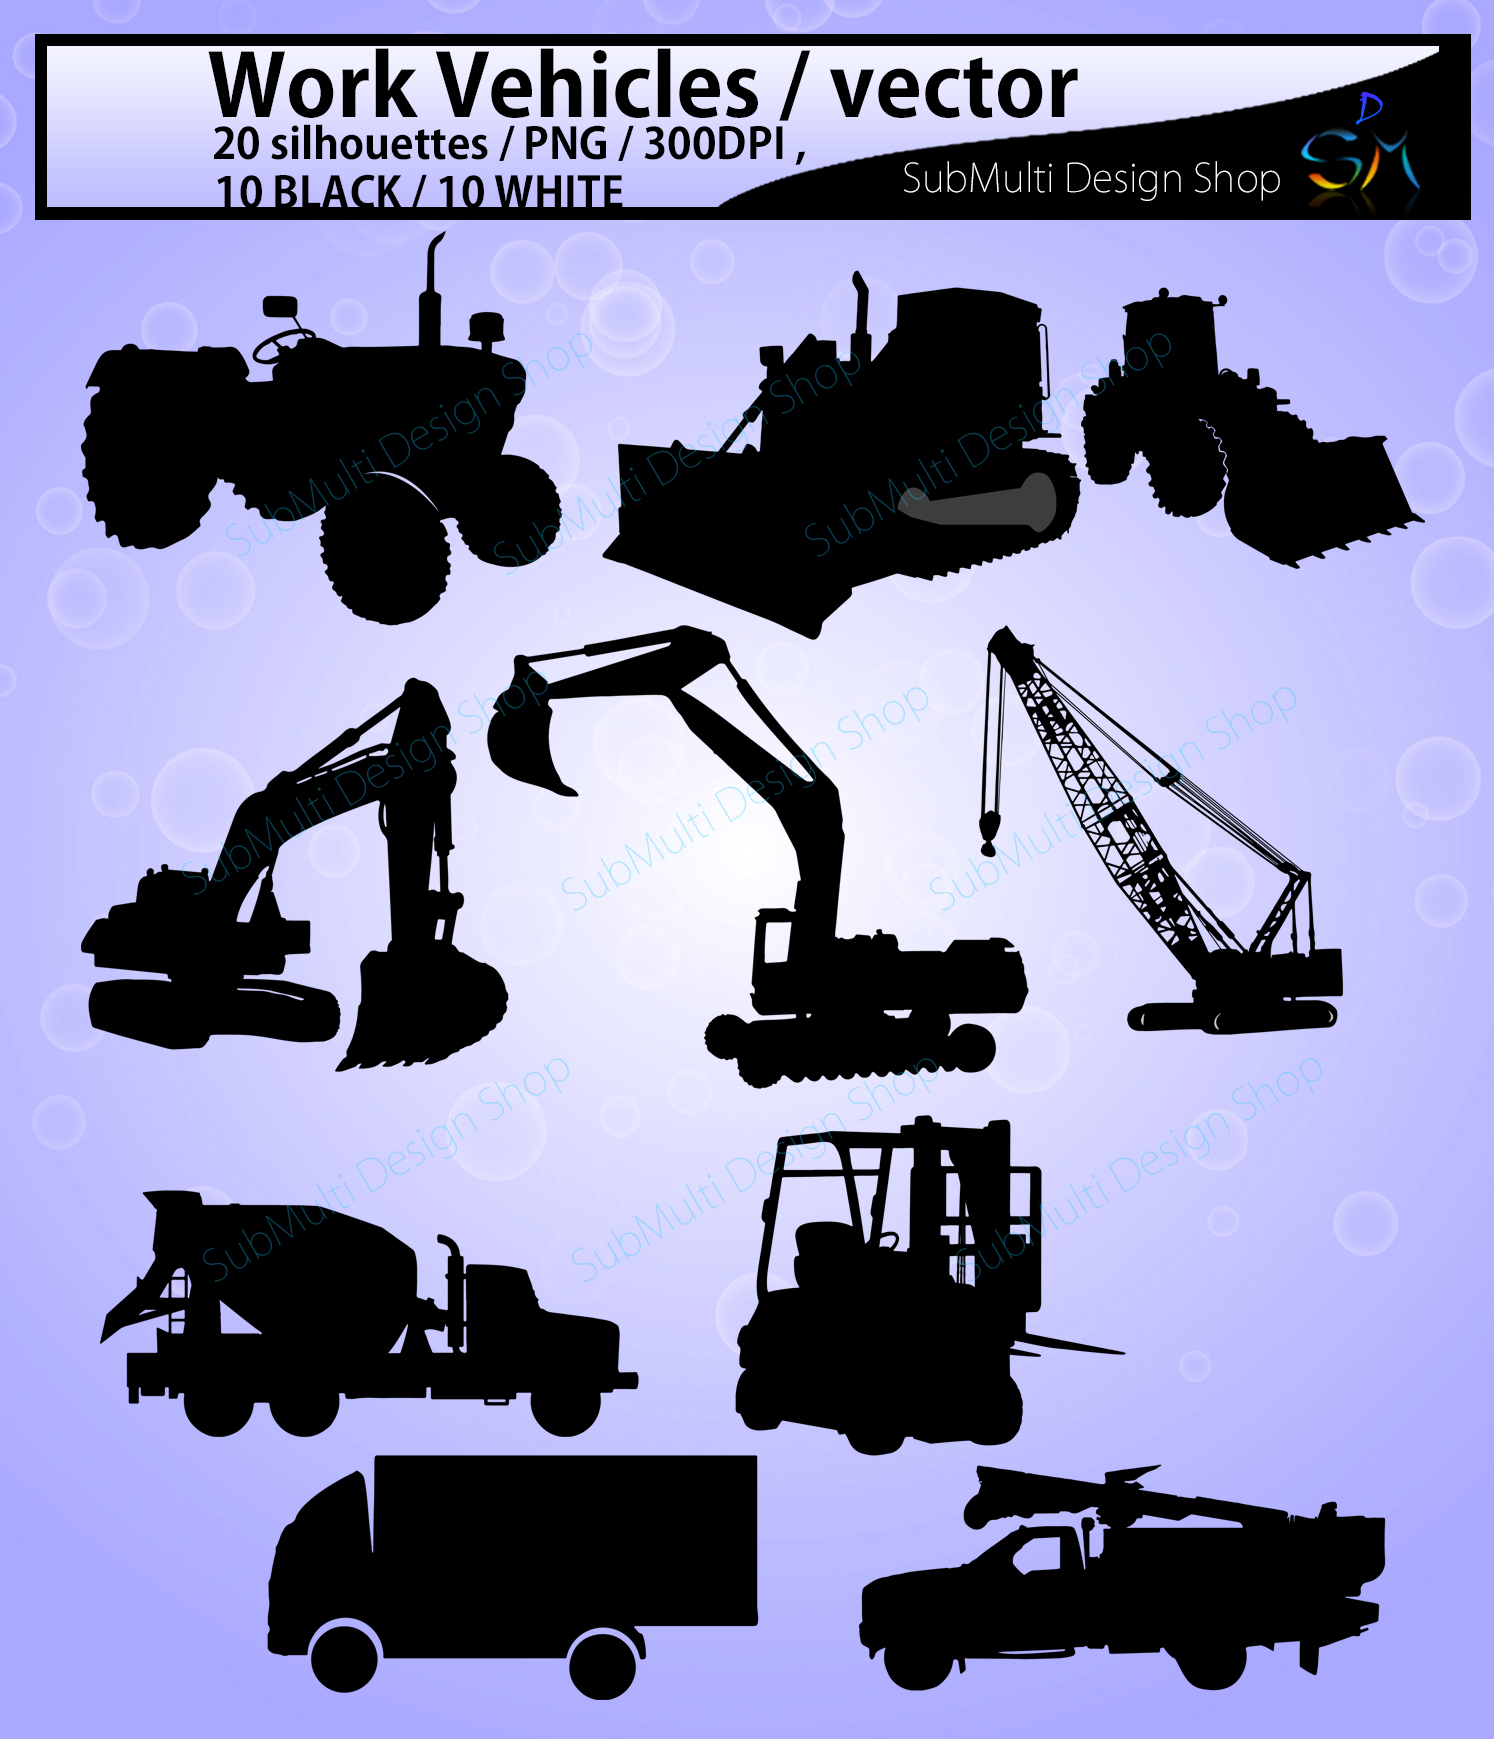 work vehicle / work vehicles silhouette / SVG file / Construction Machines Silhouettes / printable vehicle silhouette / vector EPS example image 2